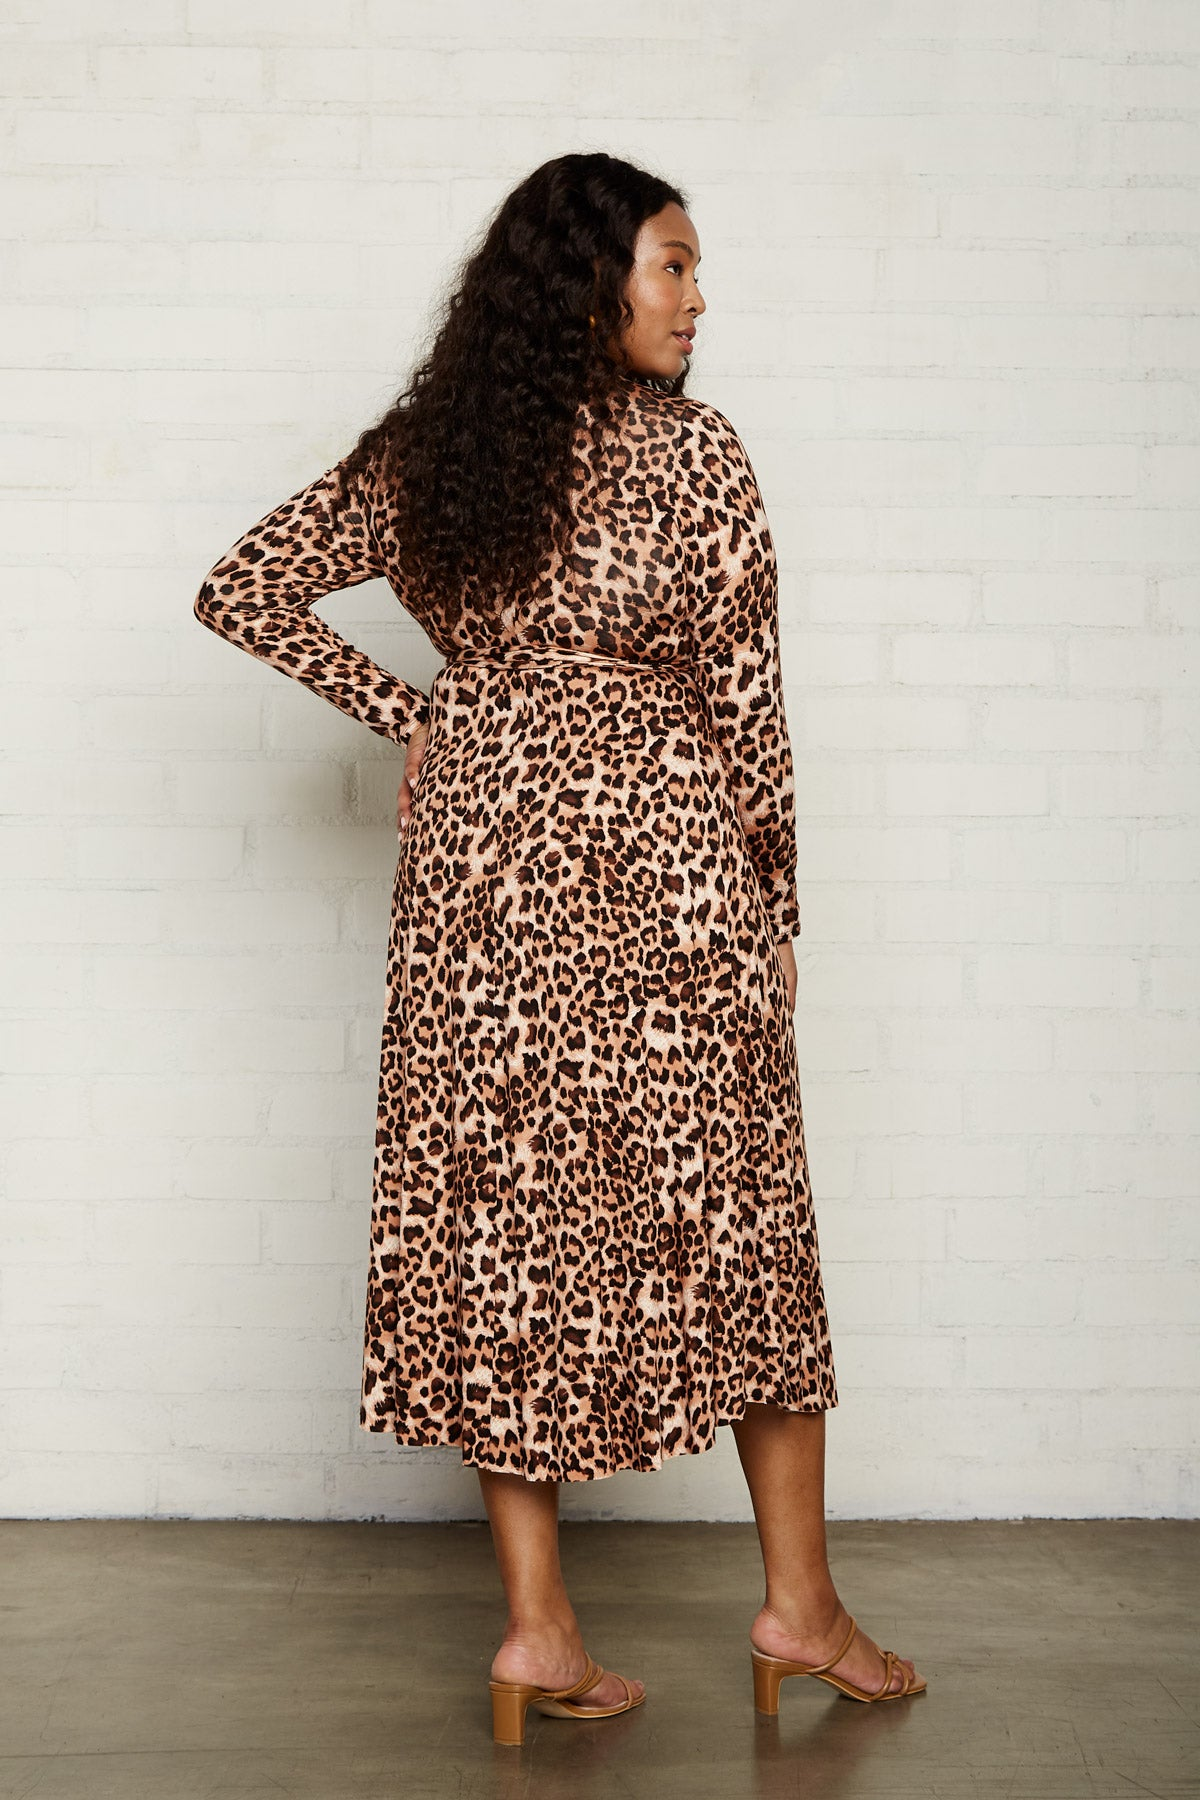 Mid-Length Harlow Dress - Leopard, Plus Size